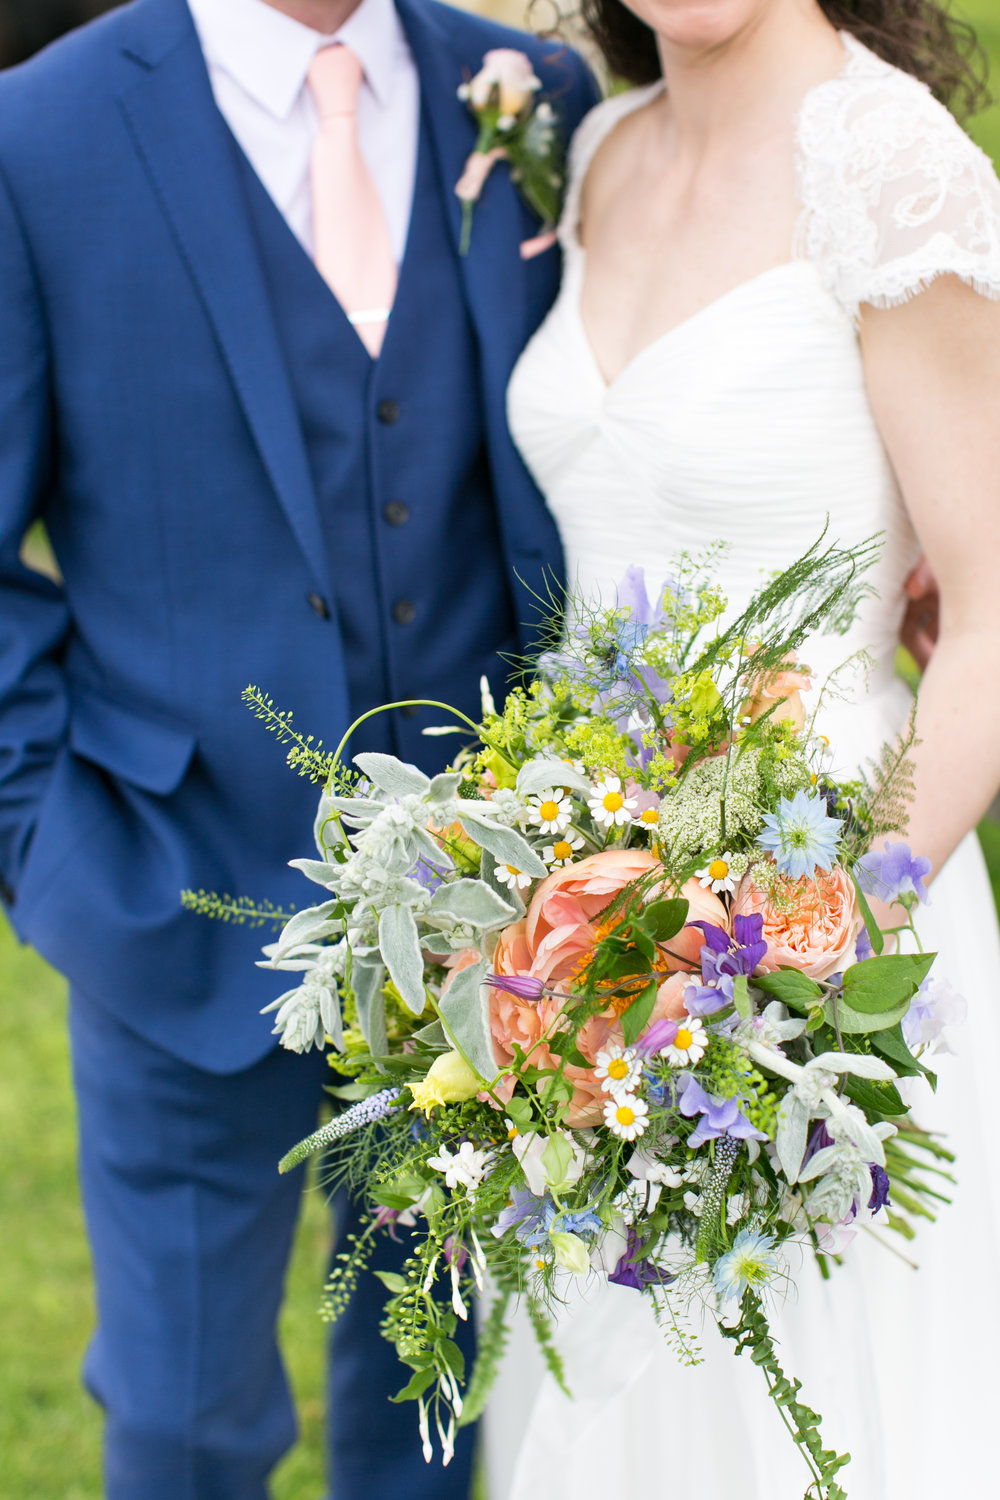 Kerri's hand tied bridal bouquet - bursting with just everything May had to offer. What you can't always appreciate from a photograph is the movement these types of bouquet have. Light and wispy the stems bounce and swish, wafting the most beautiful scents from the trails of jasmine and sweet peas (I still dream about this beautiful ensemble).